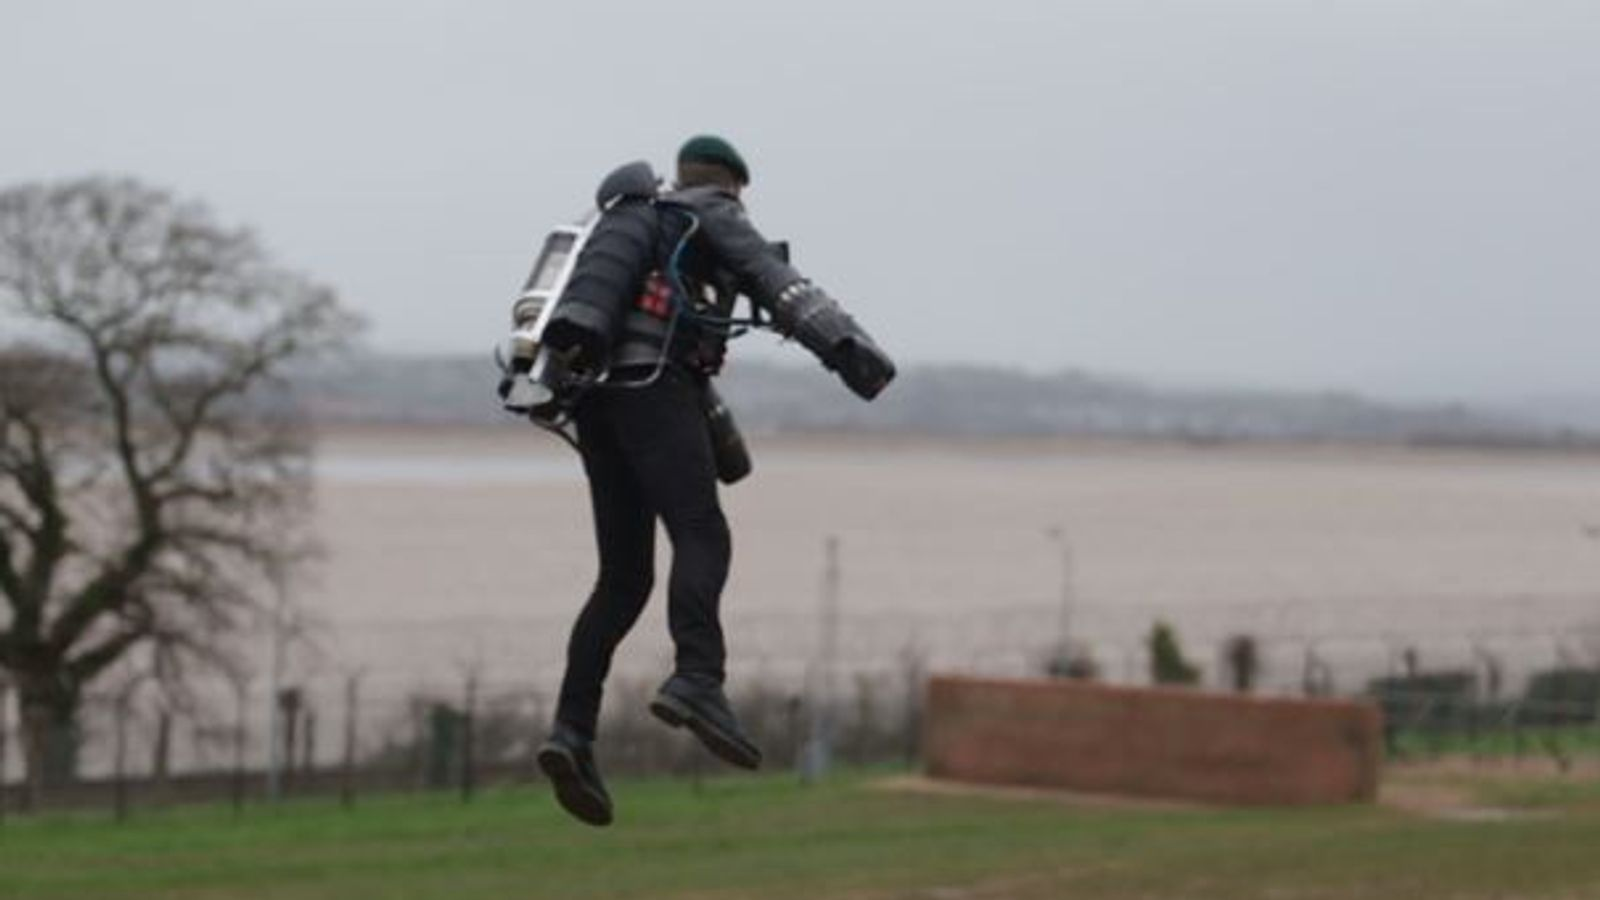 Iron Man Former Royal Marine Flies Assault Course In Jet Pack Uk News Sky News